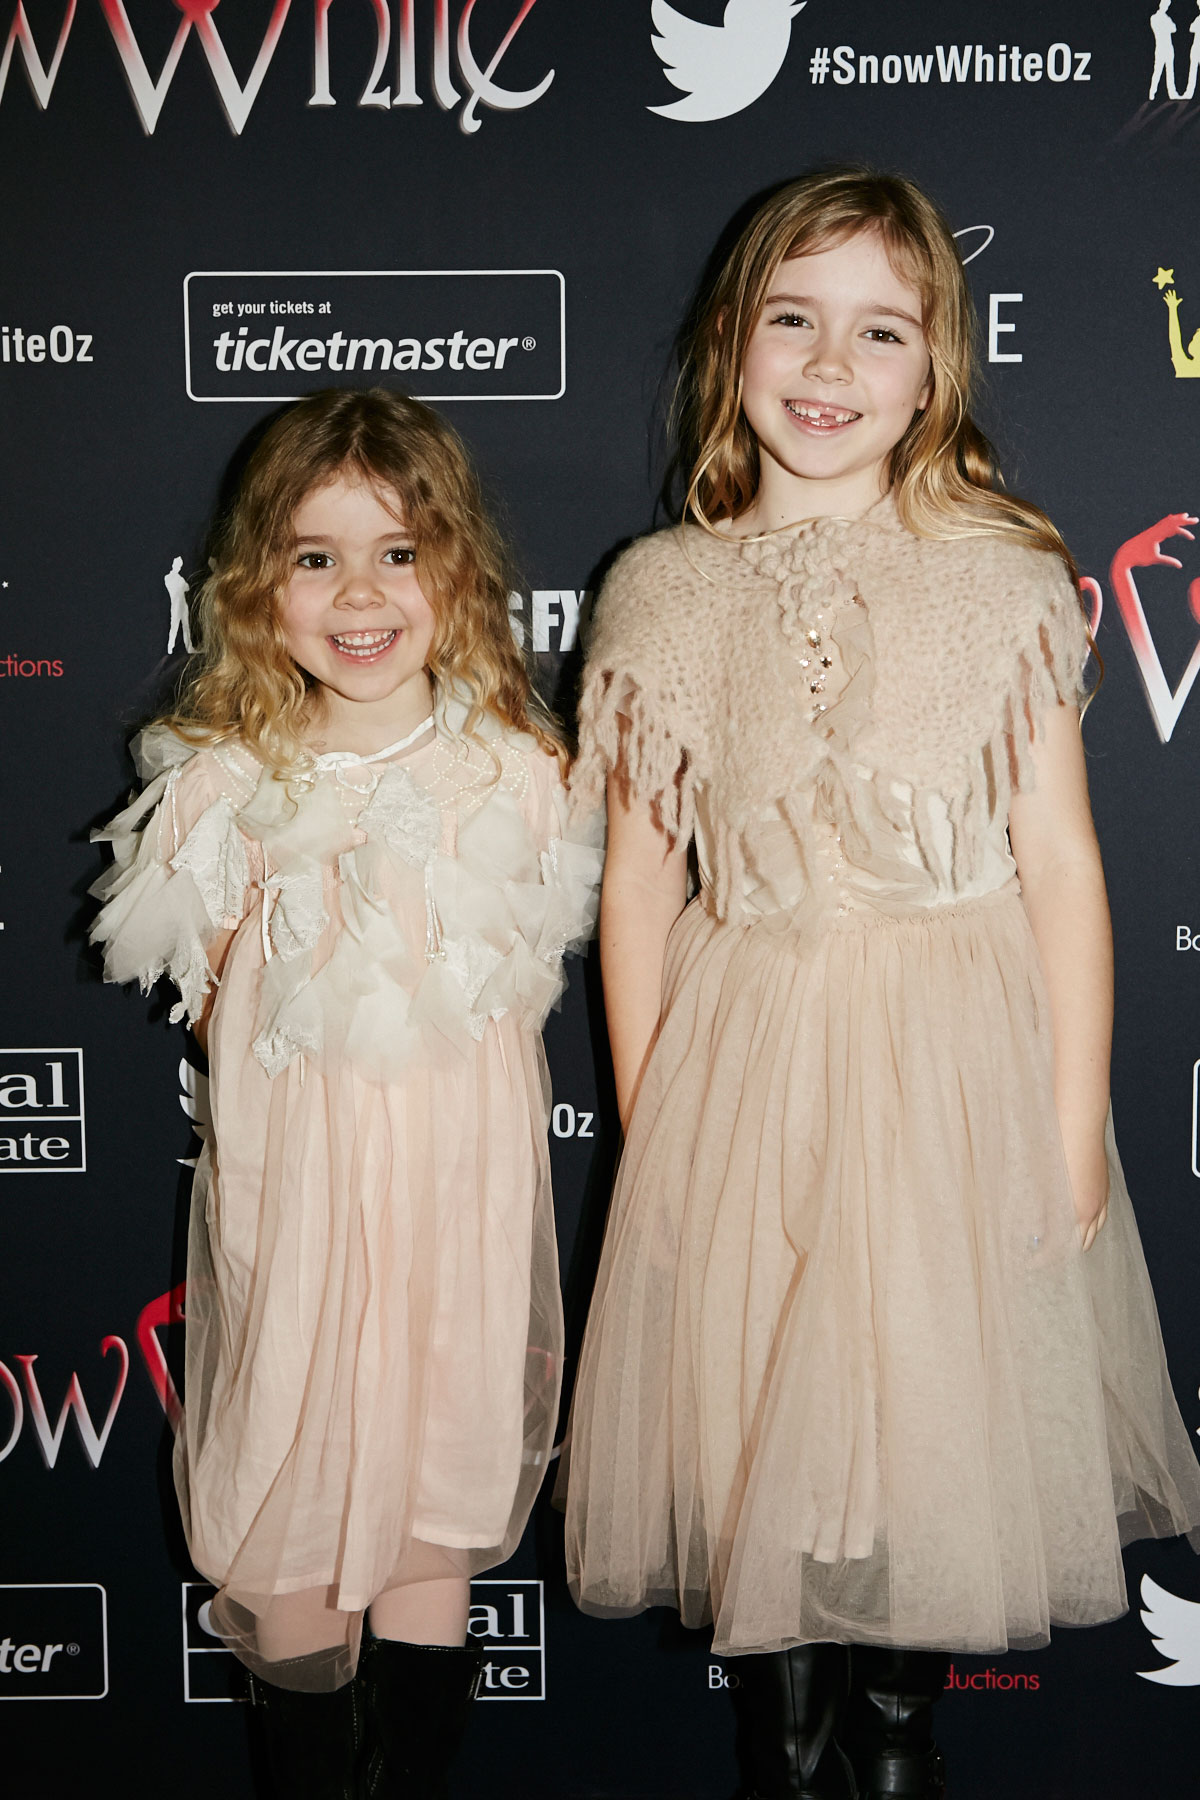 Isla-&Willow2